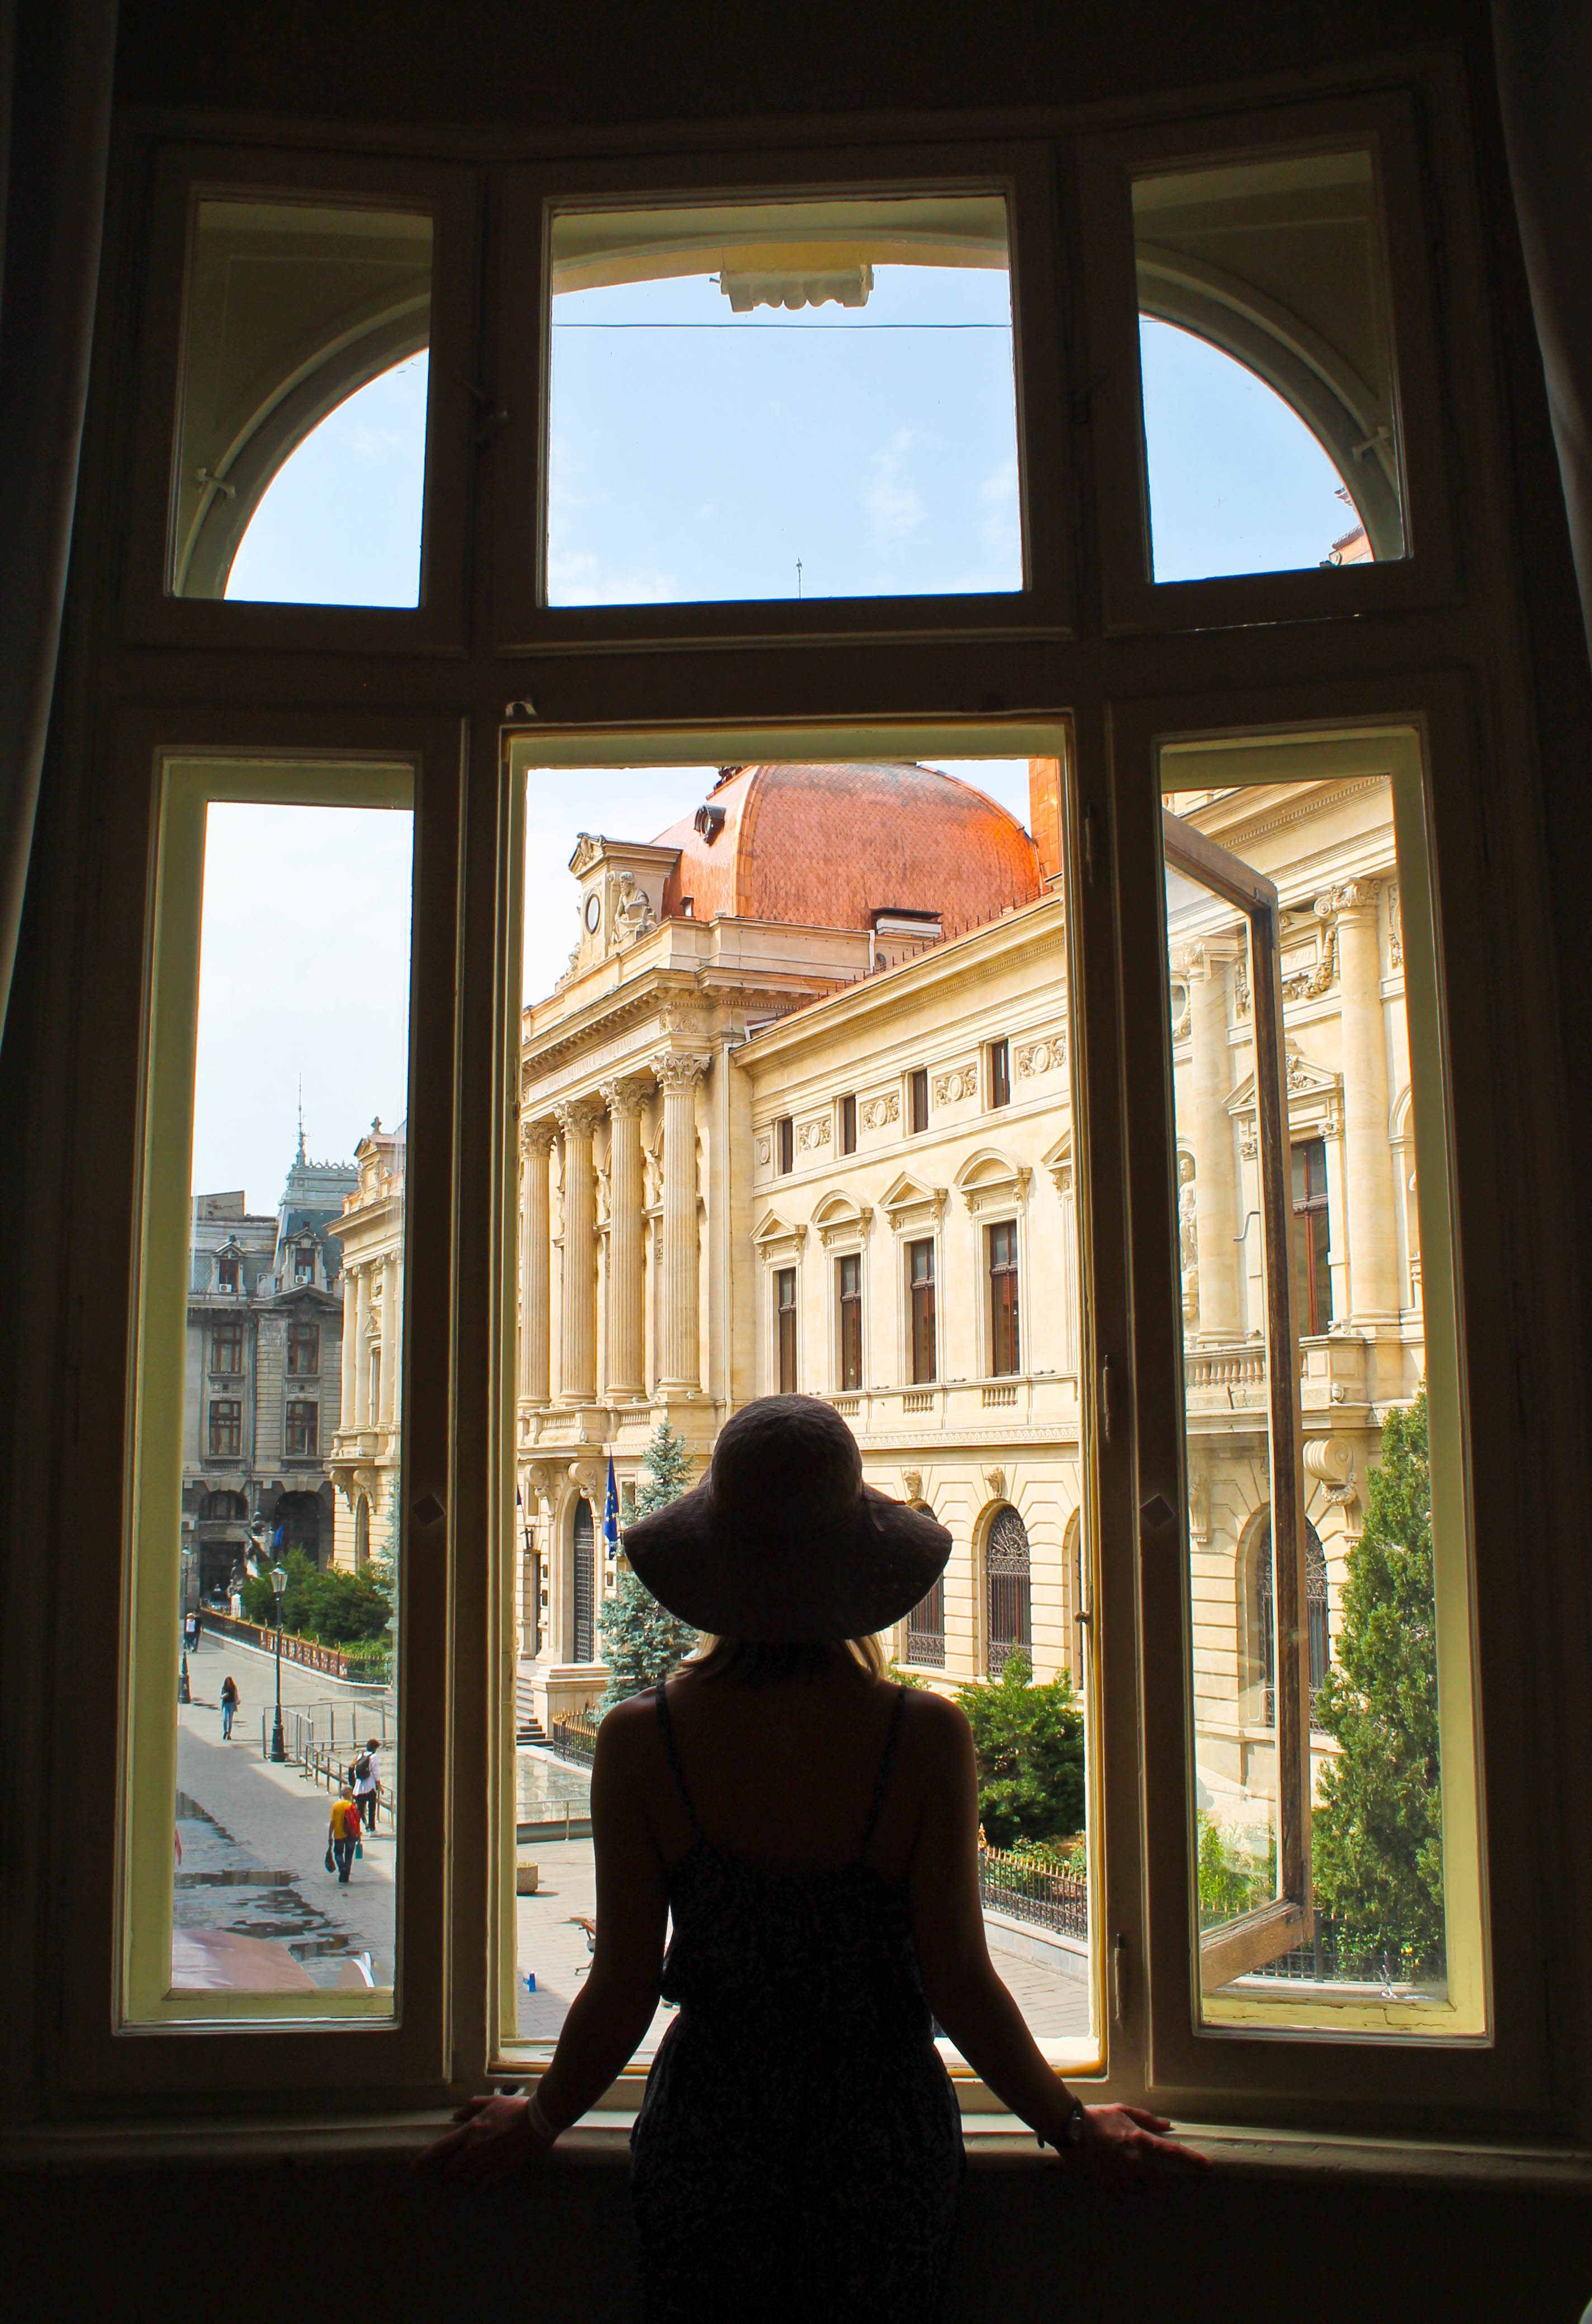 10 ways Bucharest blew me away